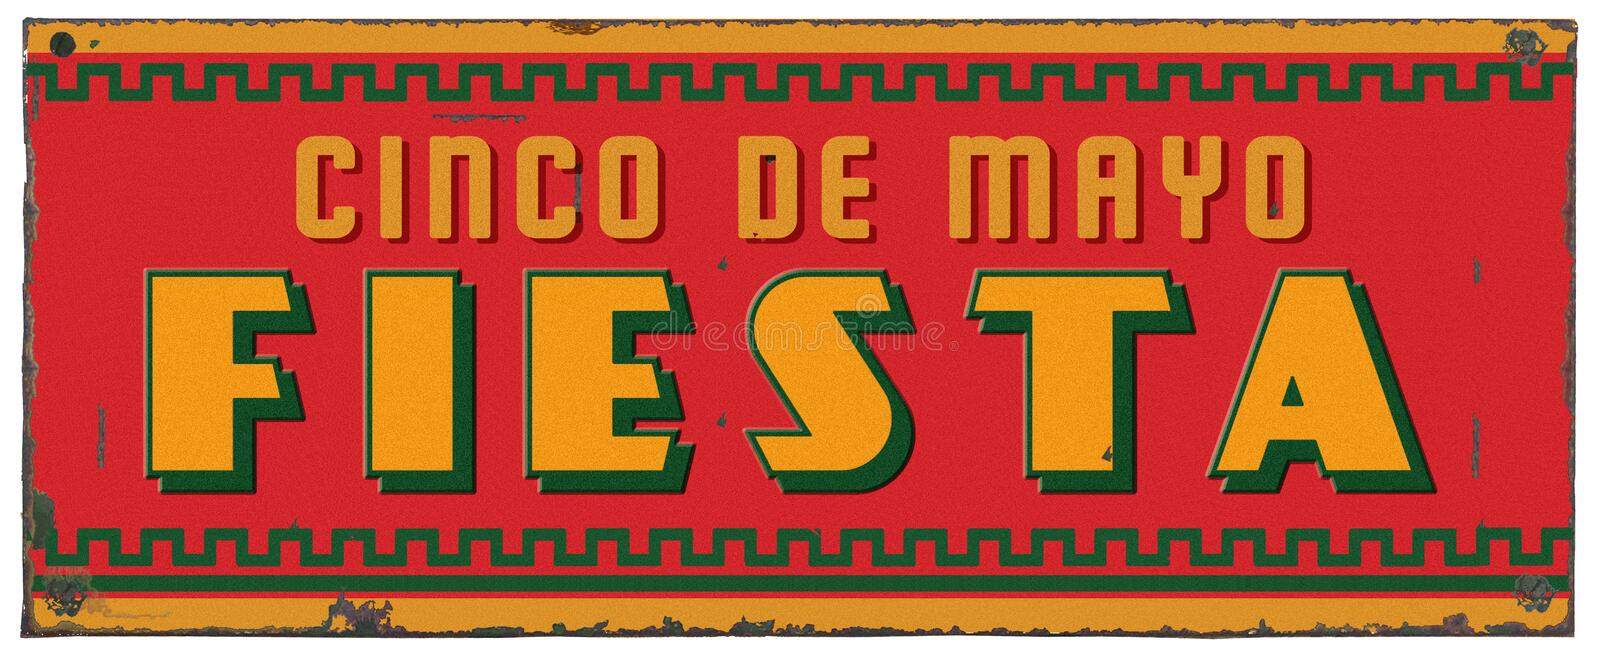 Cinco De Mayo Party Fiesta Art Grunge Metal Sign royalty free stock photography